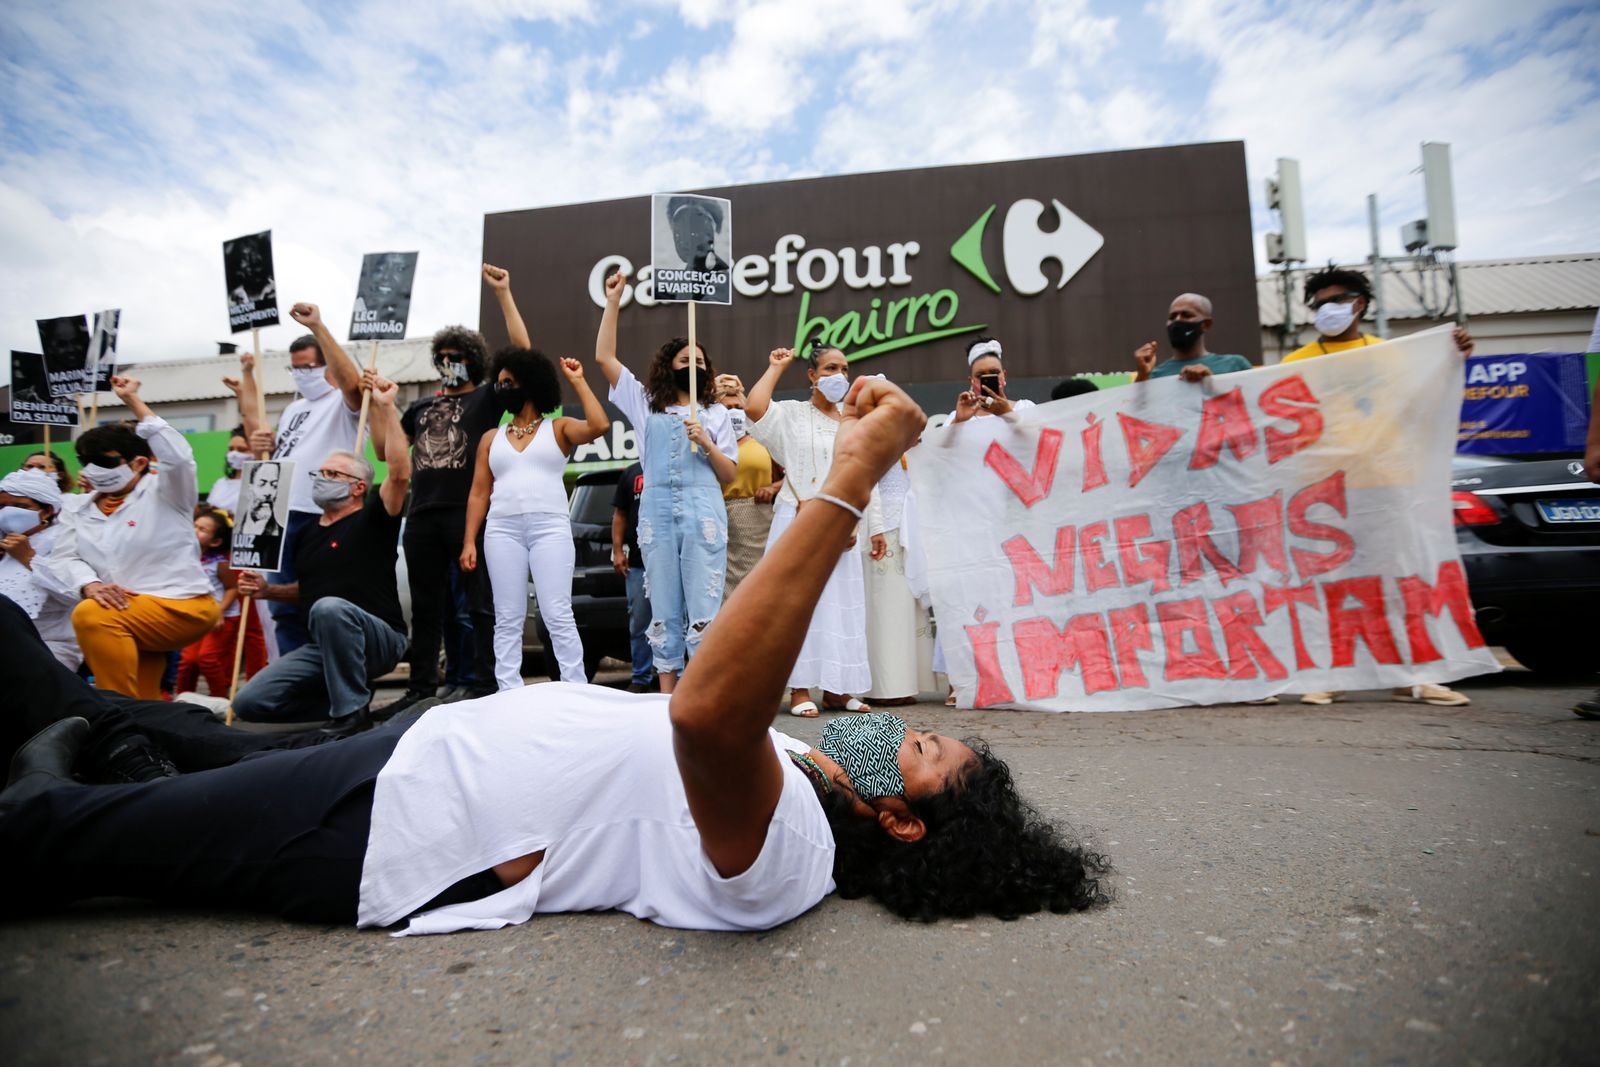 Demonstrators take a part in a protest in front of a Carrefour supermarket, after Joao Alberto Silveira Freitas was beaten to death by security guards at a Carrefour supermarket